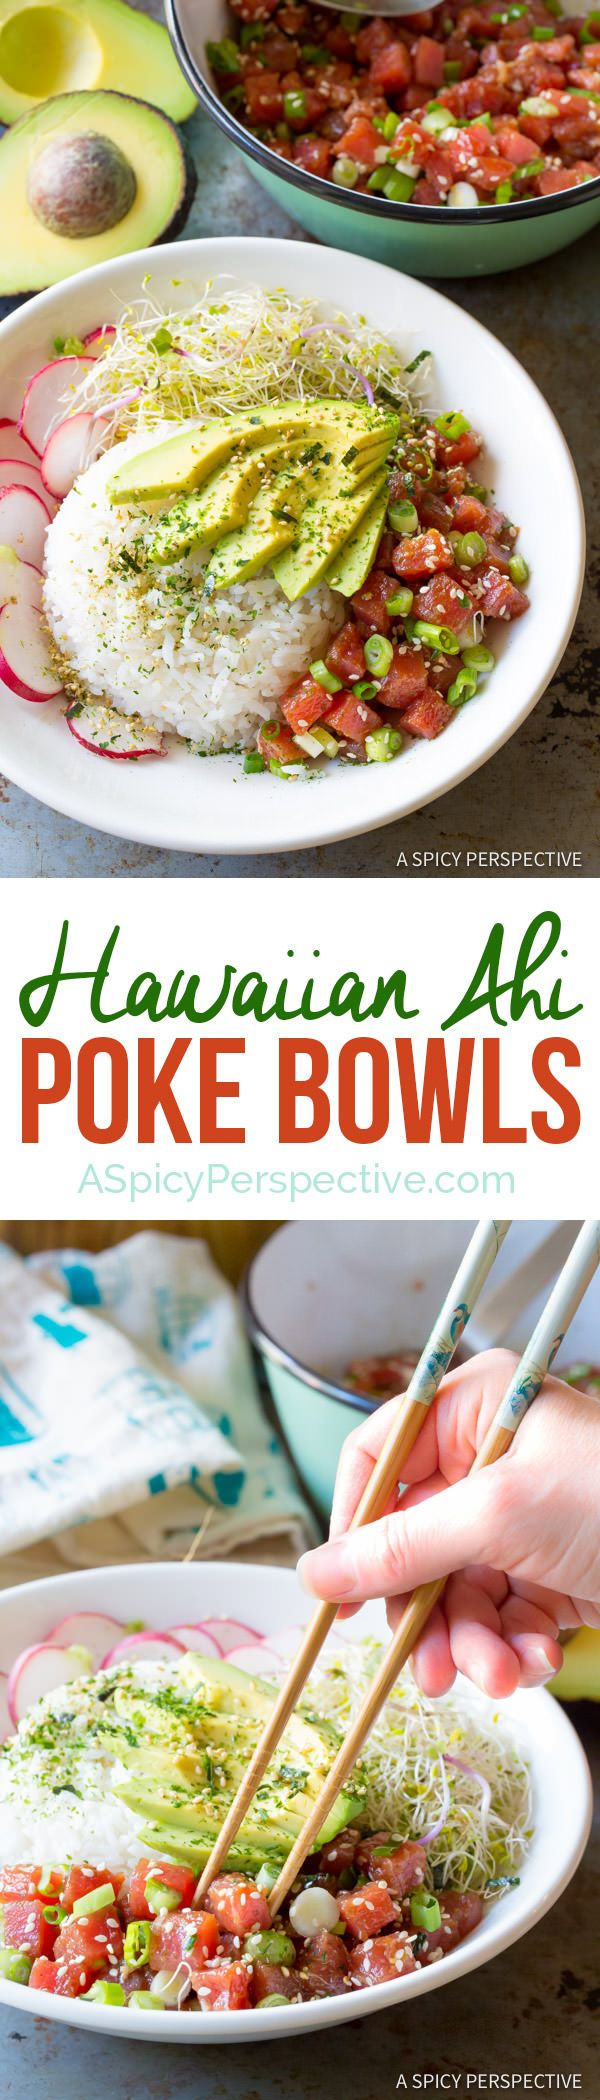 Healthy Hawaiian Ahi Poke Bowl Recipe (Gluten Free)| ASpicyPerspective.com